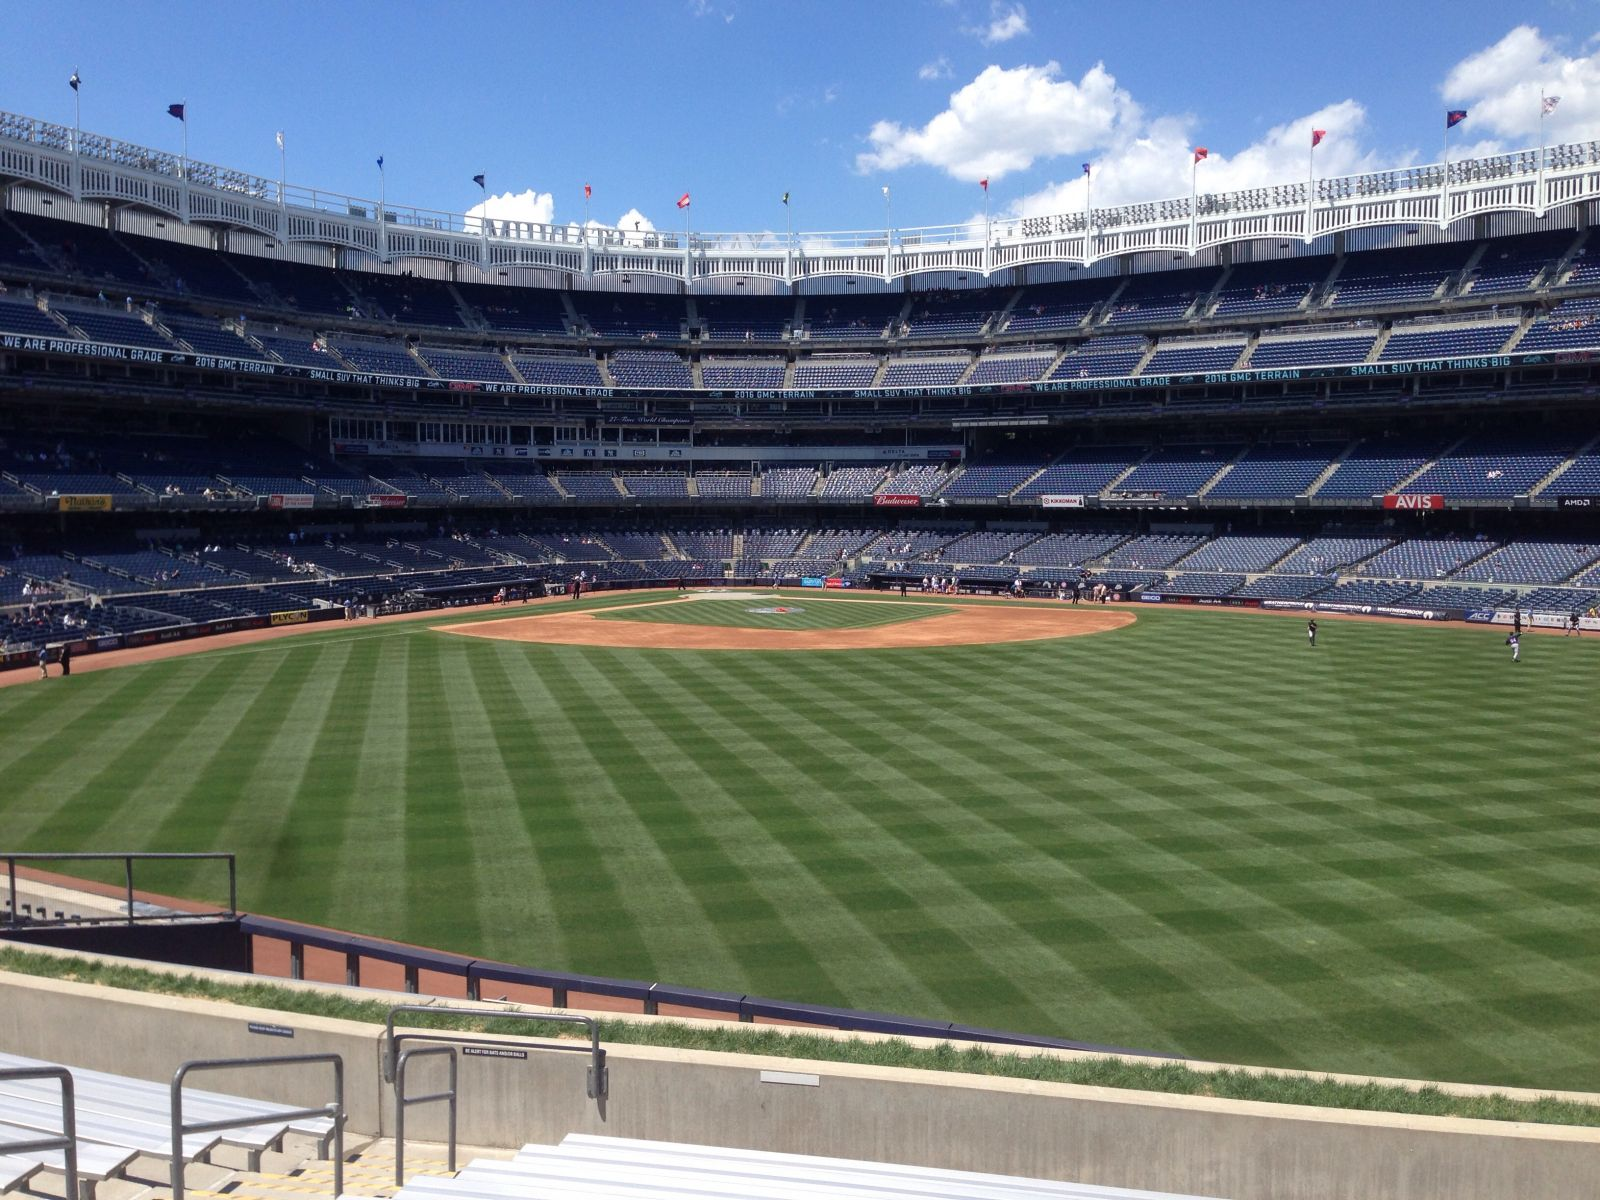 New York Yankees Seat View for Yankee Stadium Section 201, Row 14, Seat 21